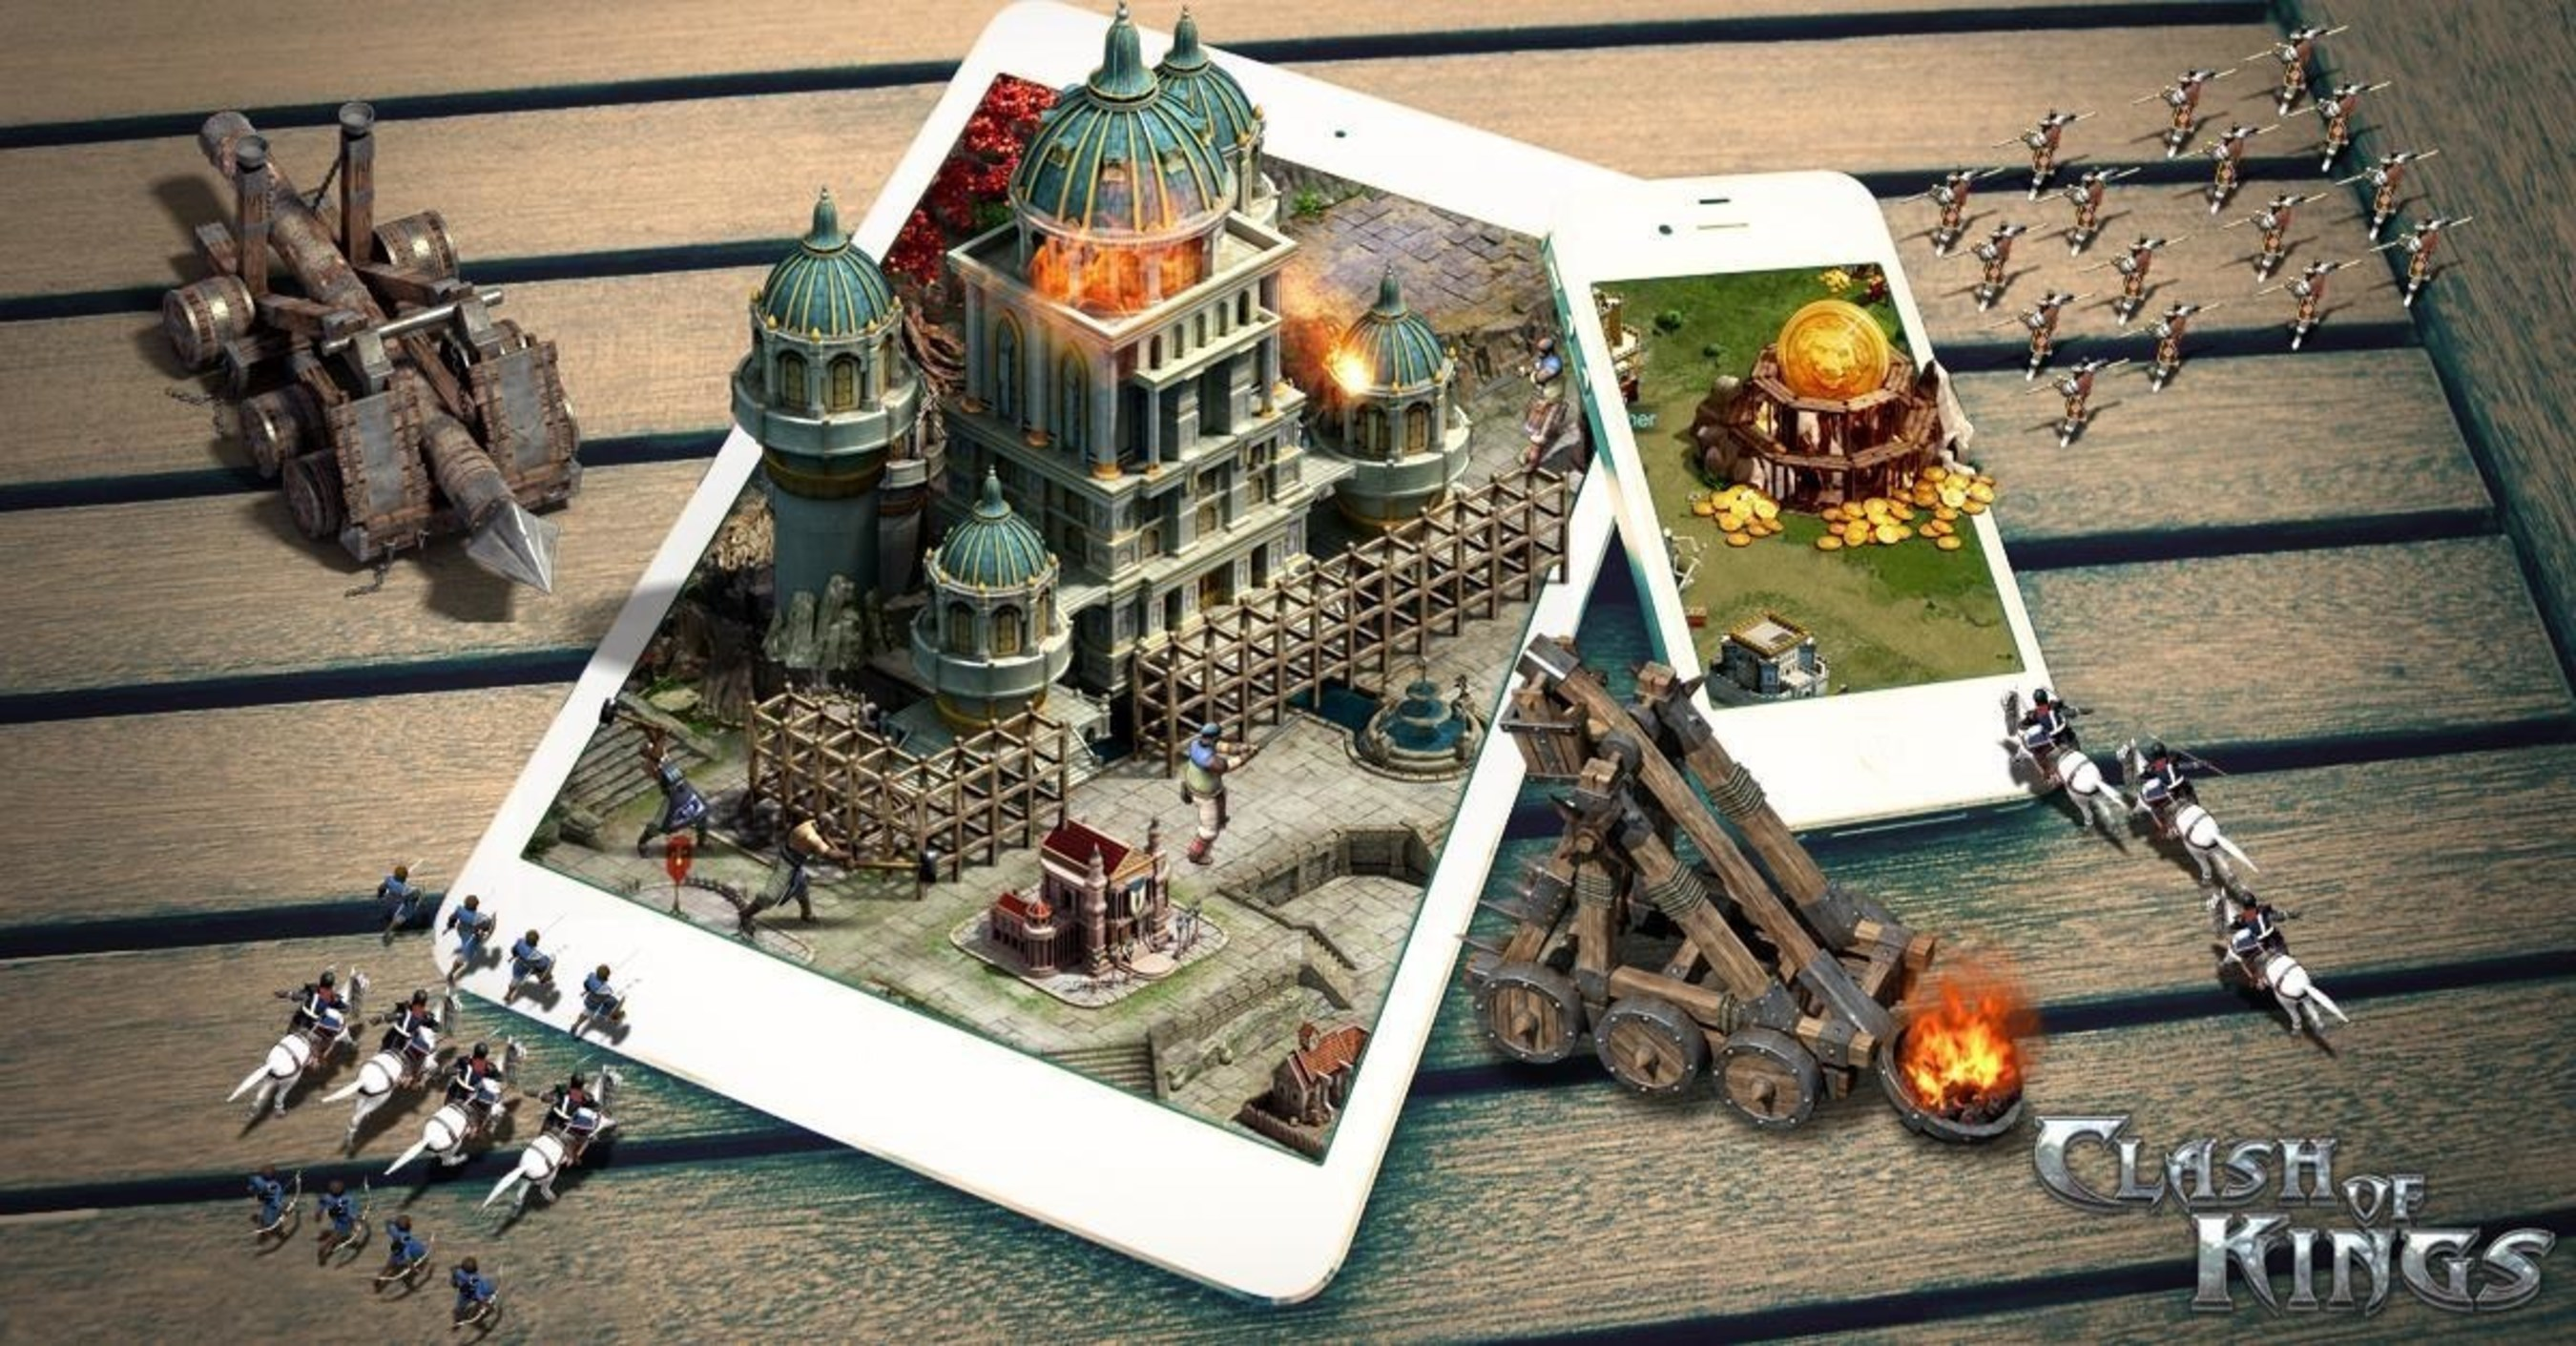 Clash of Kings (iOS) continues to grow in popularity on the App Store too